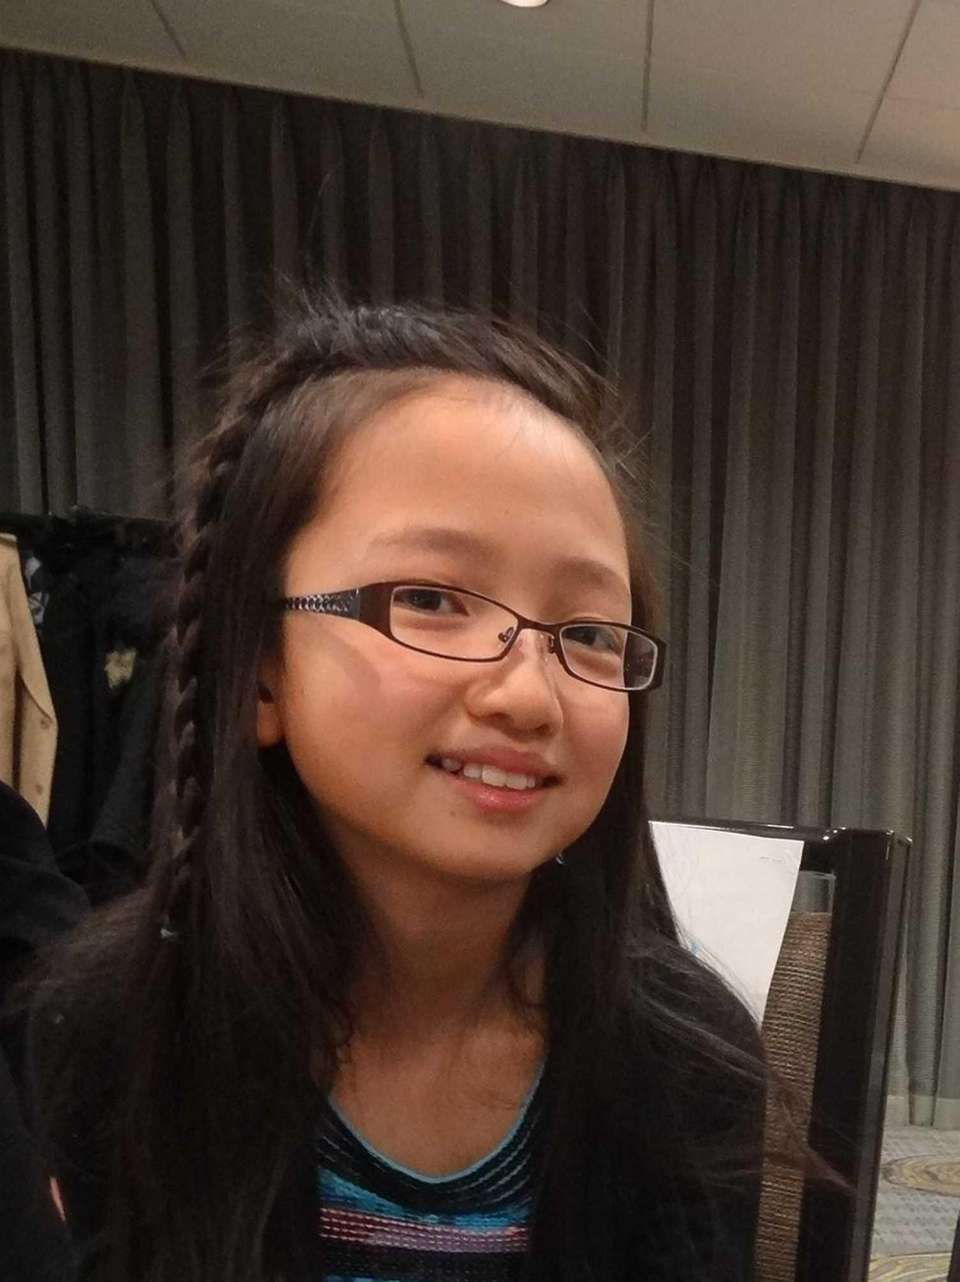 Annika Chang, 11, a student at Commack Middle